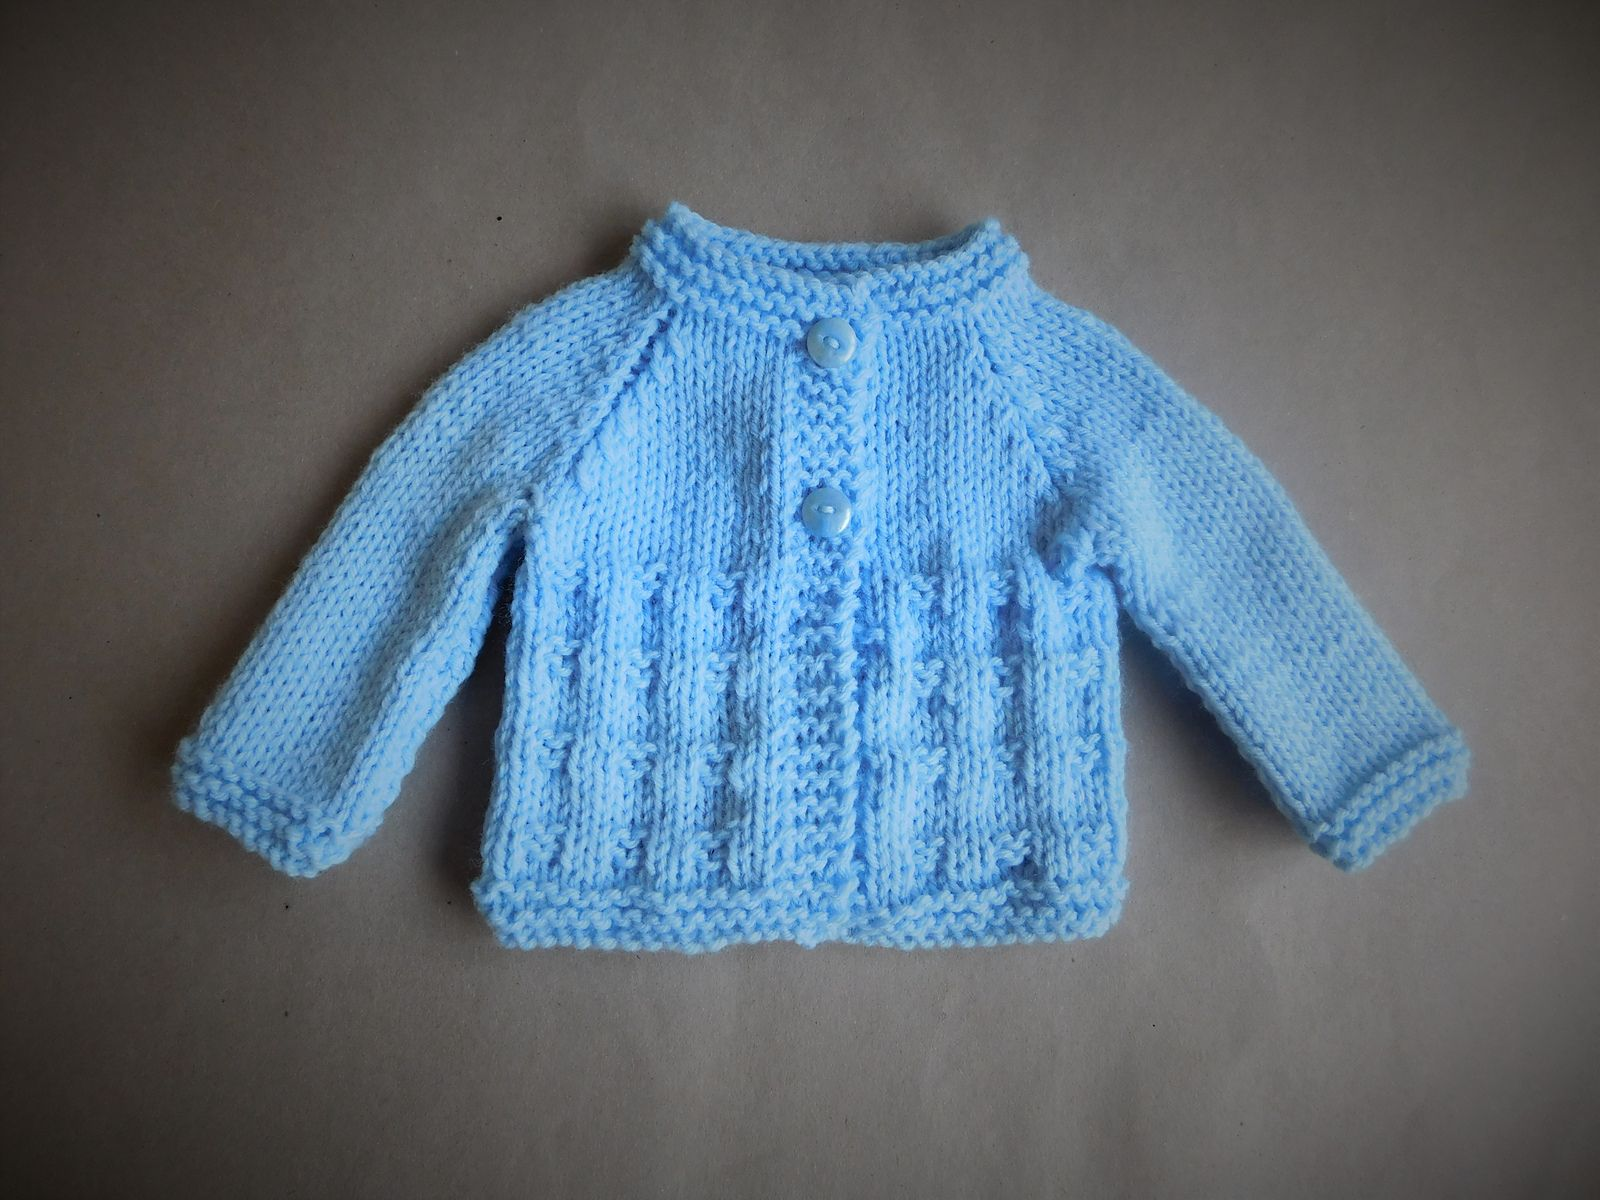 9028b2d819ee Ravelry  Little Charlie Baby Jacket   Hat by marianna mel